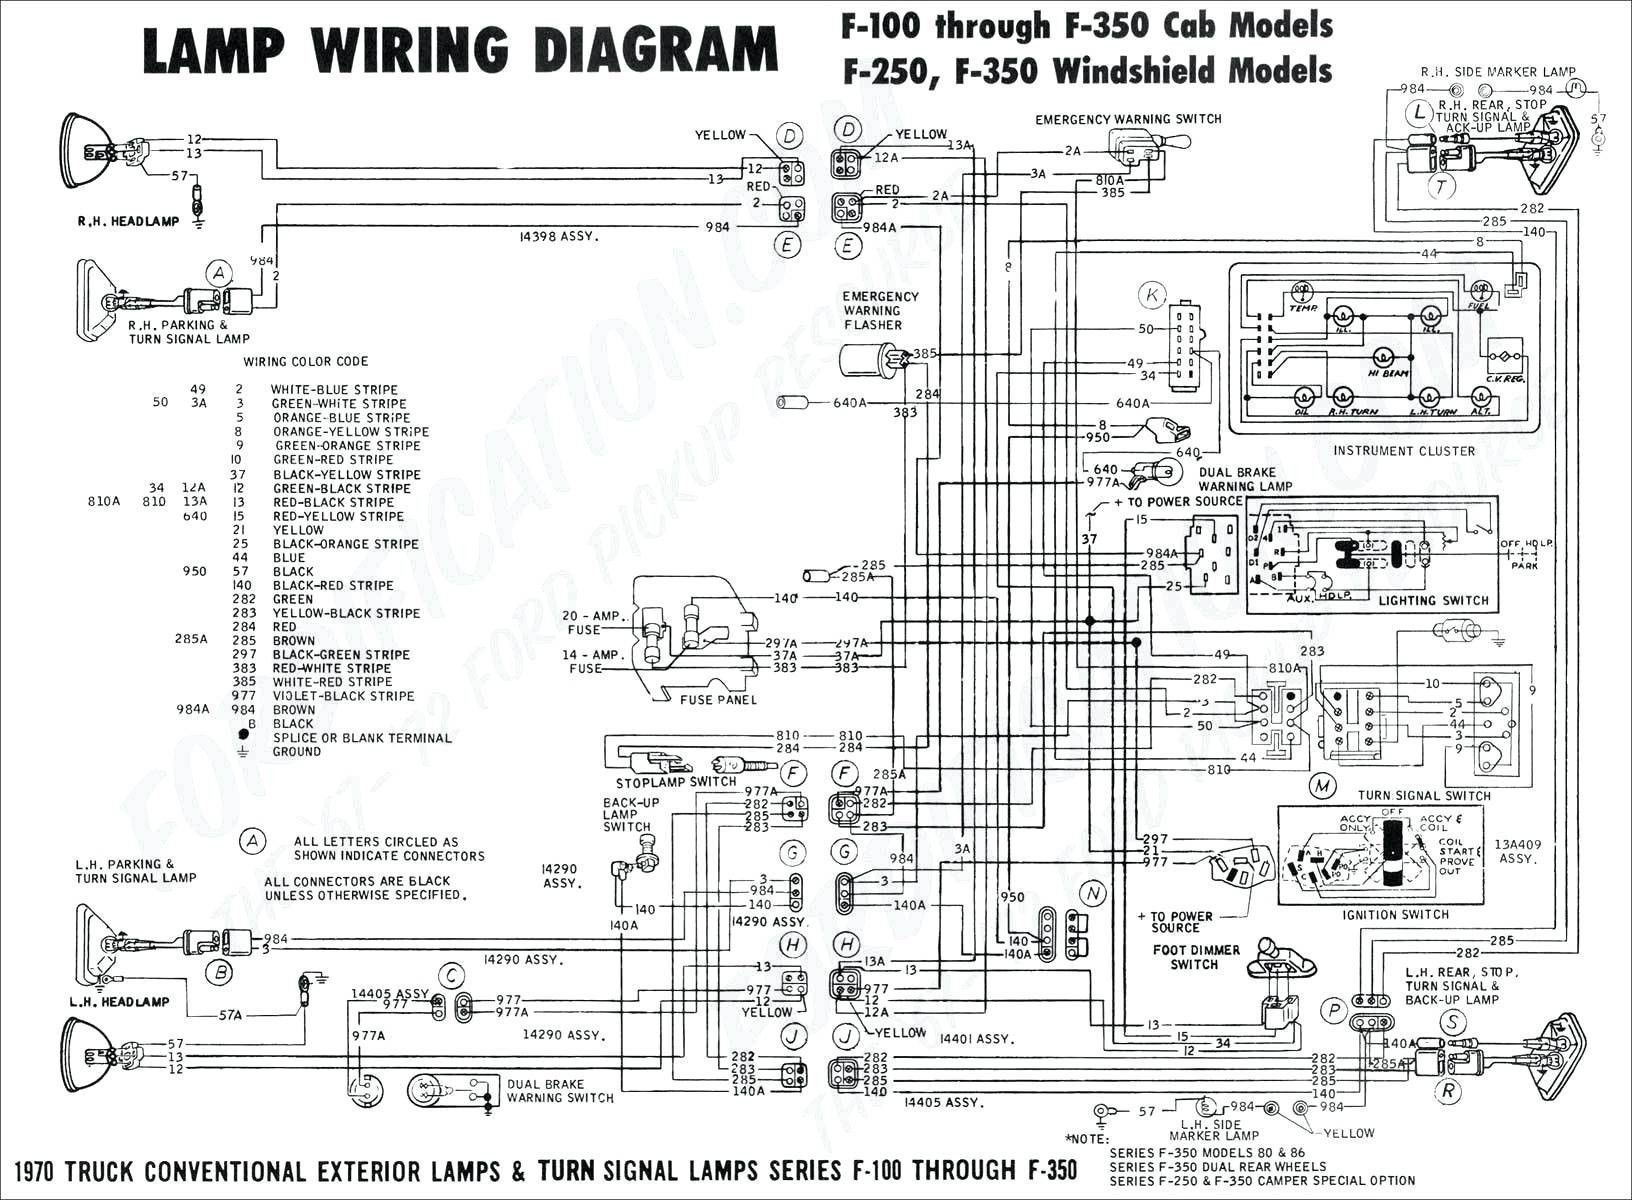 Fujitsu Ten Limited Wiring Diagram Awesome In 2020